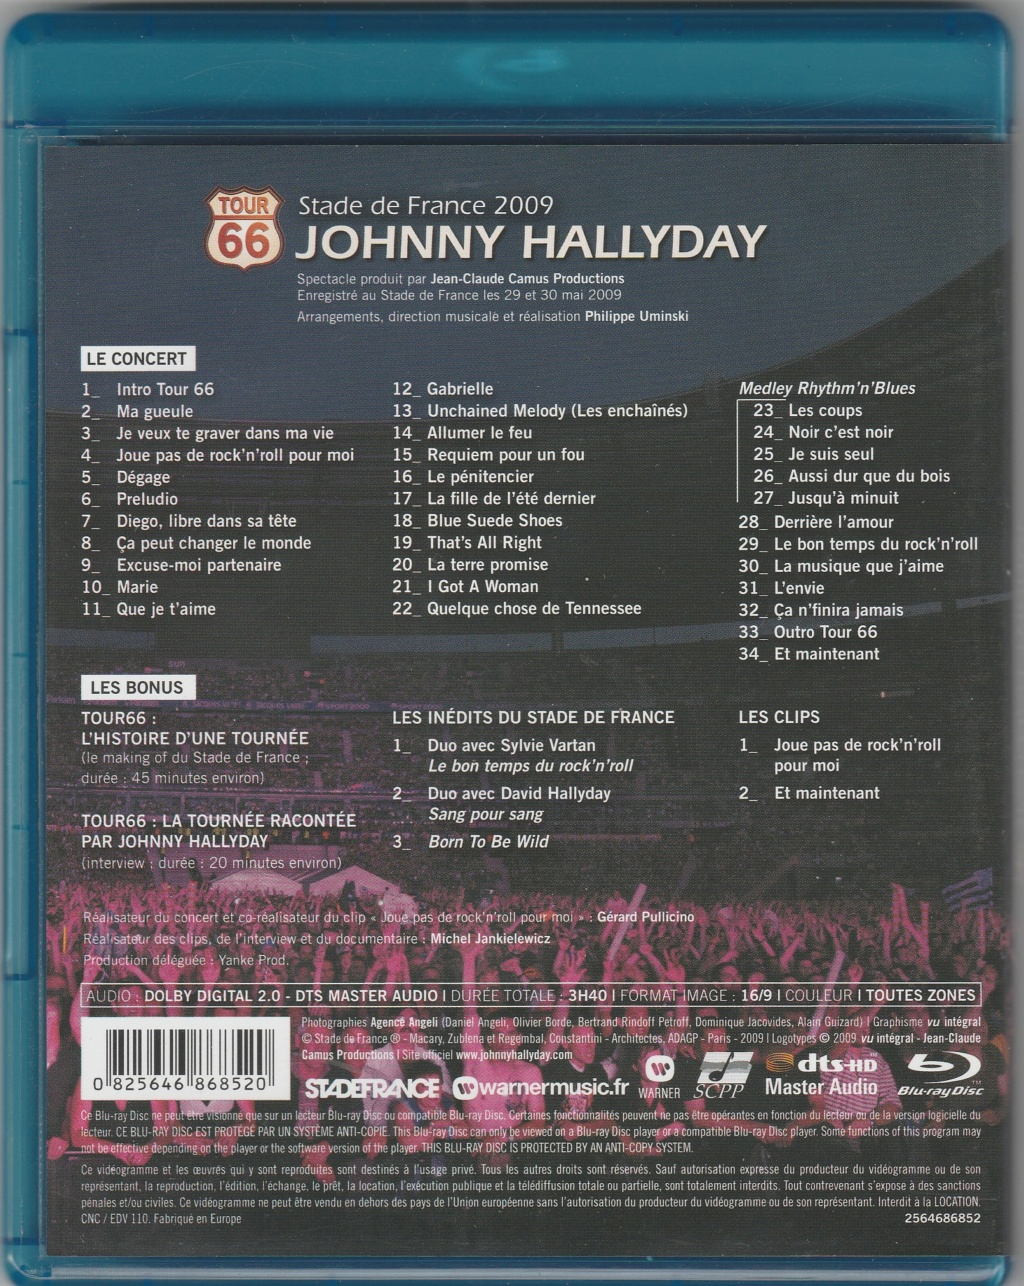 JAQUETTES BLU-RAY DISC ( CONCERTS, FILMS ) - Page 2 Img_2276